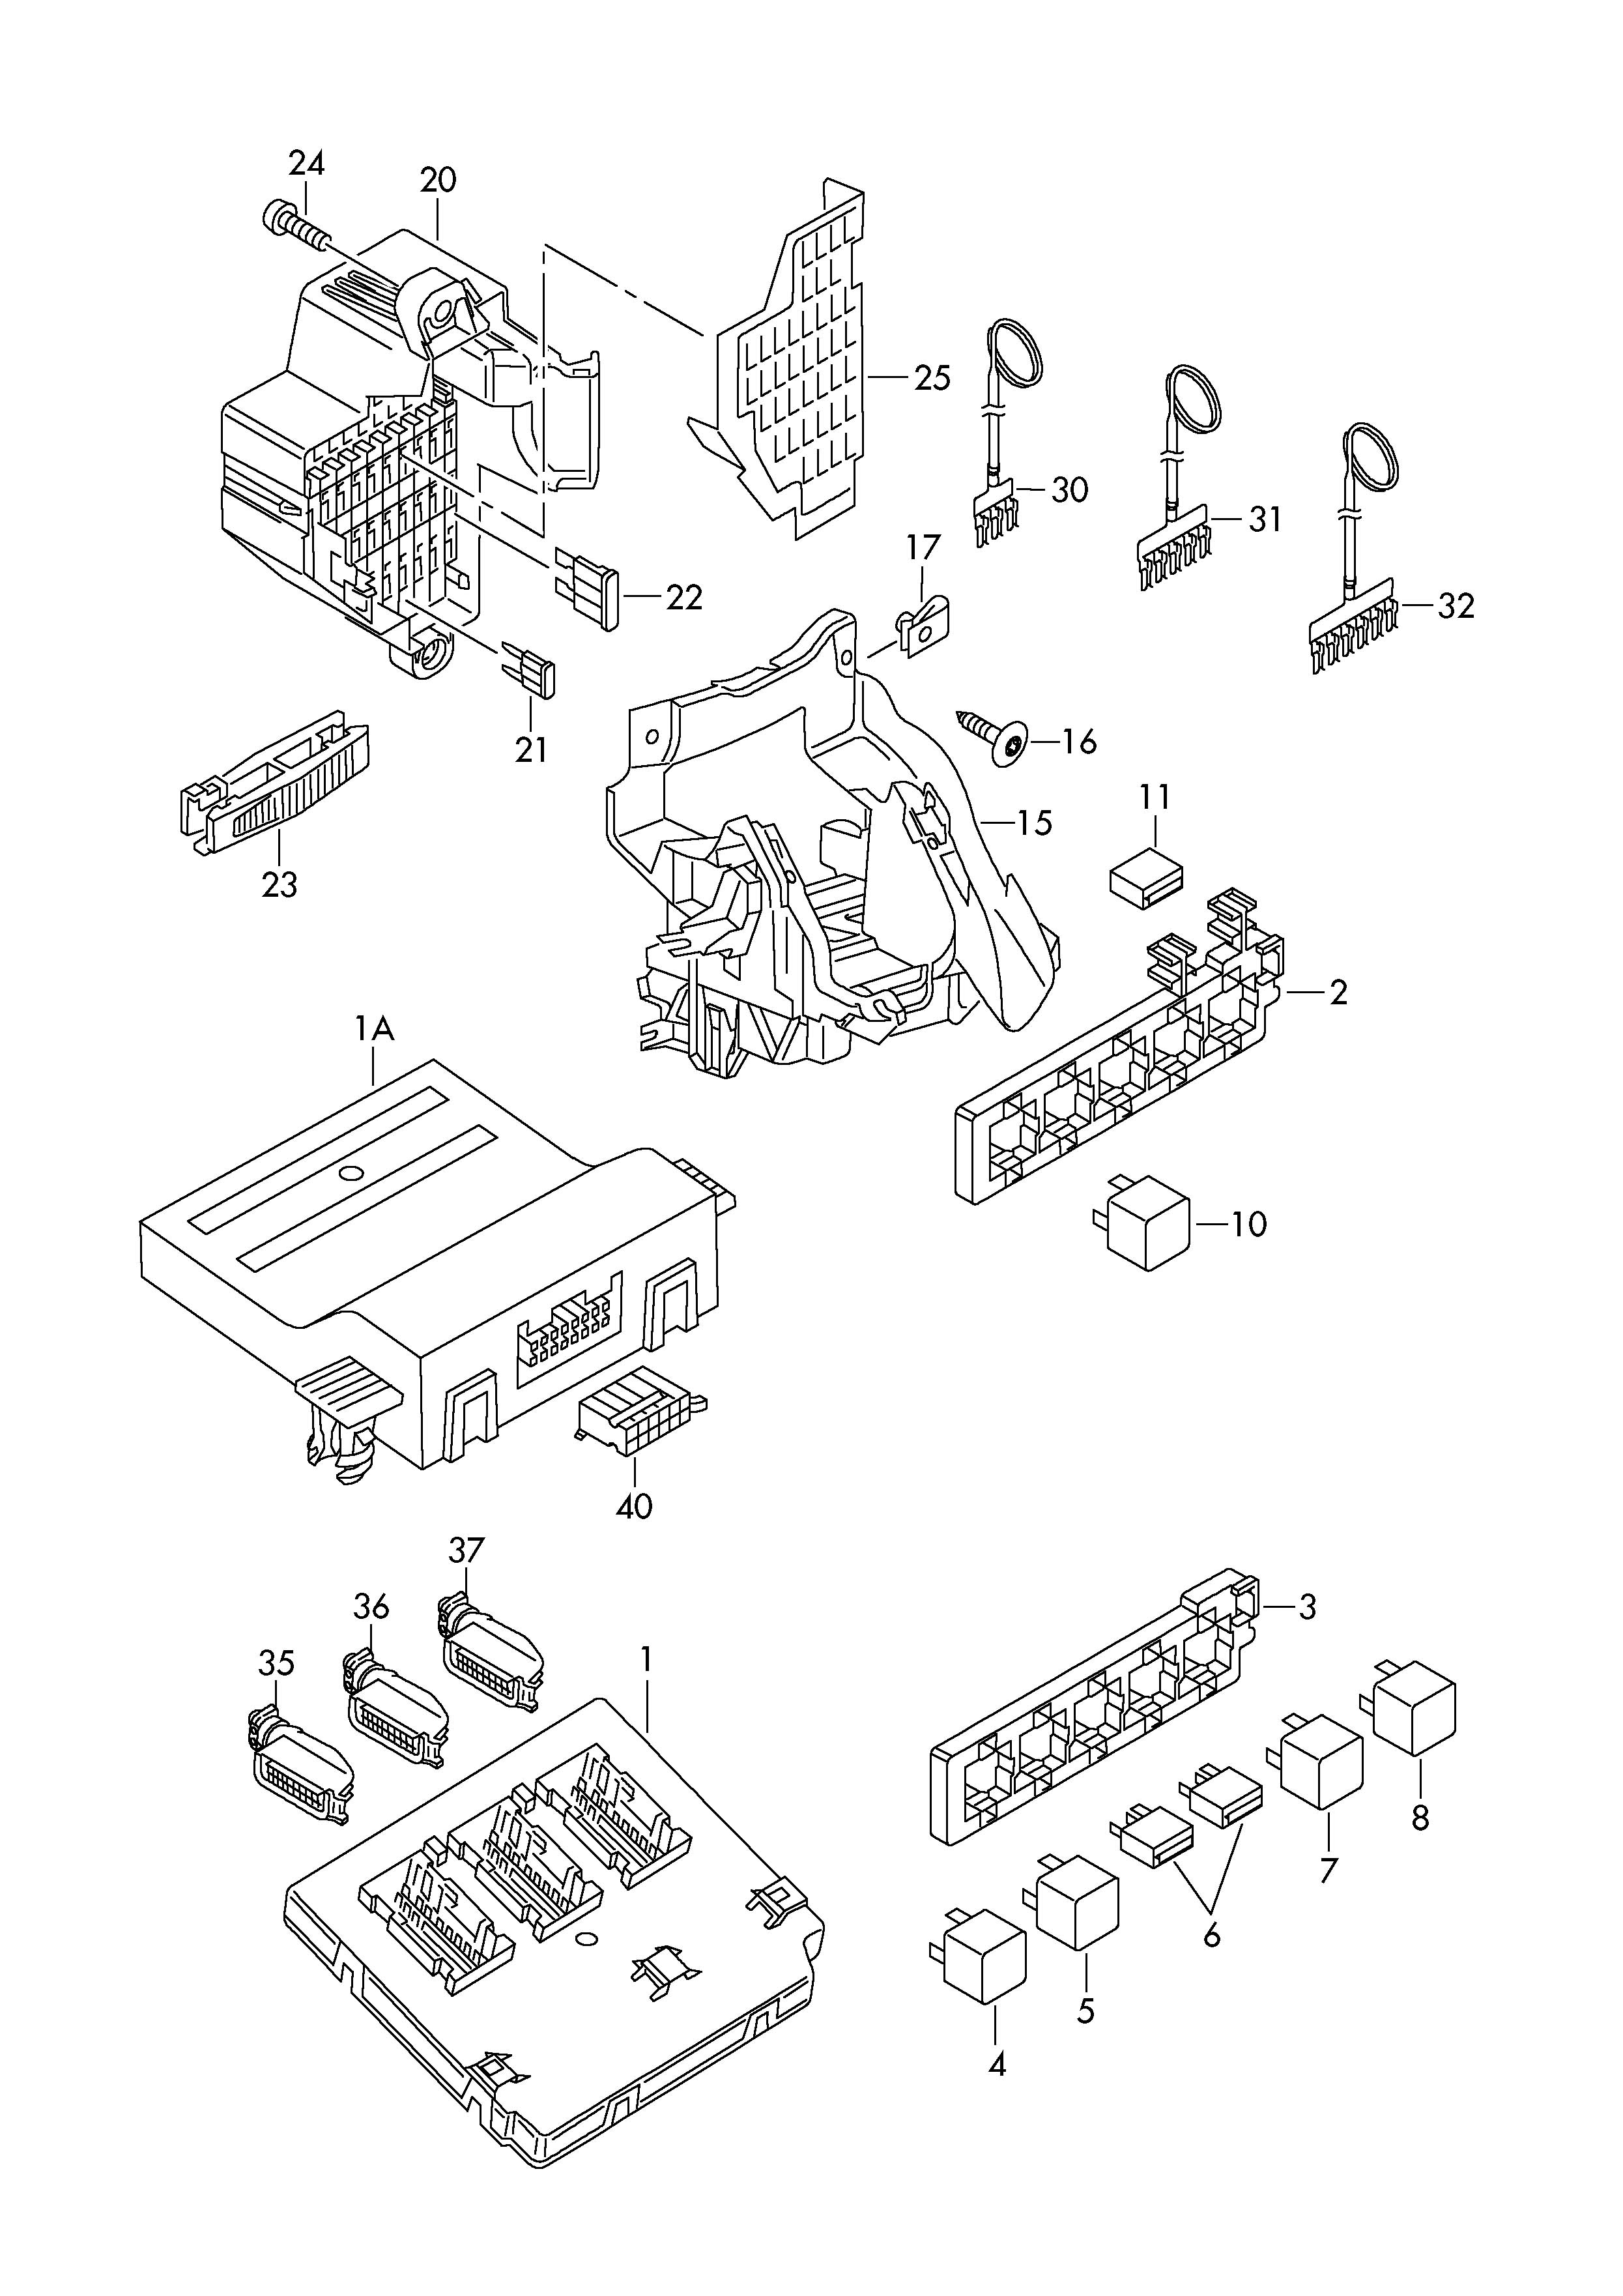 Fasteners fuse holder diagnosis interface for data bus